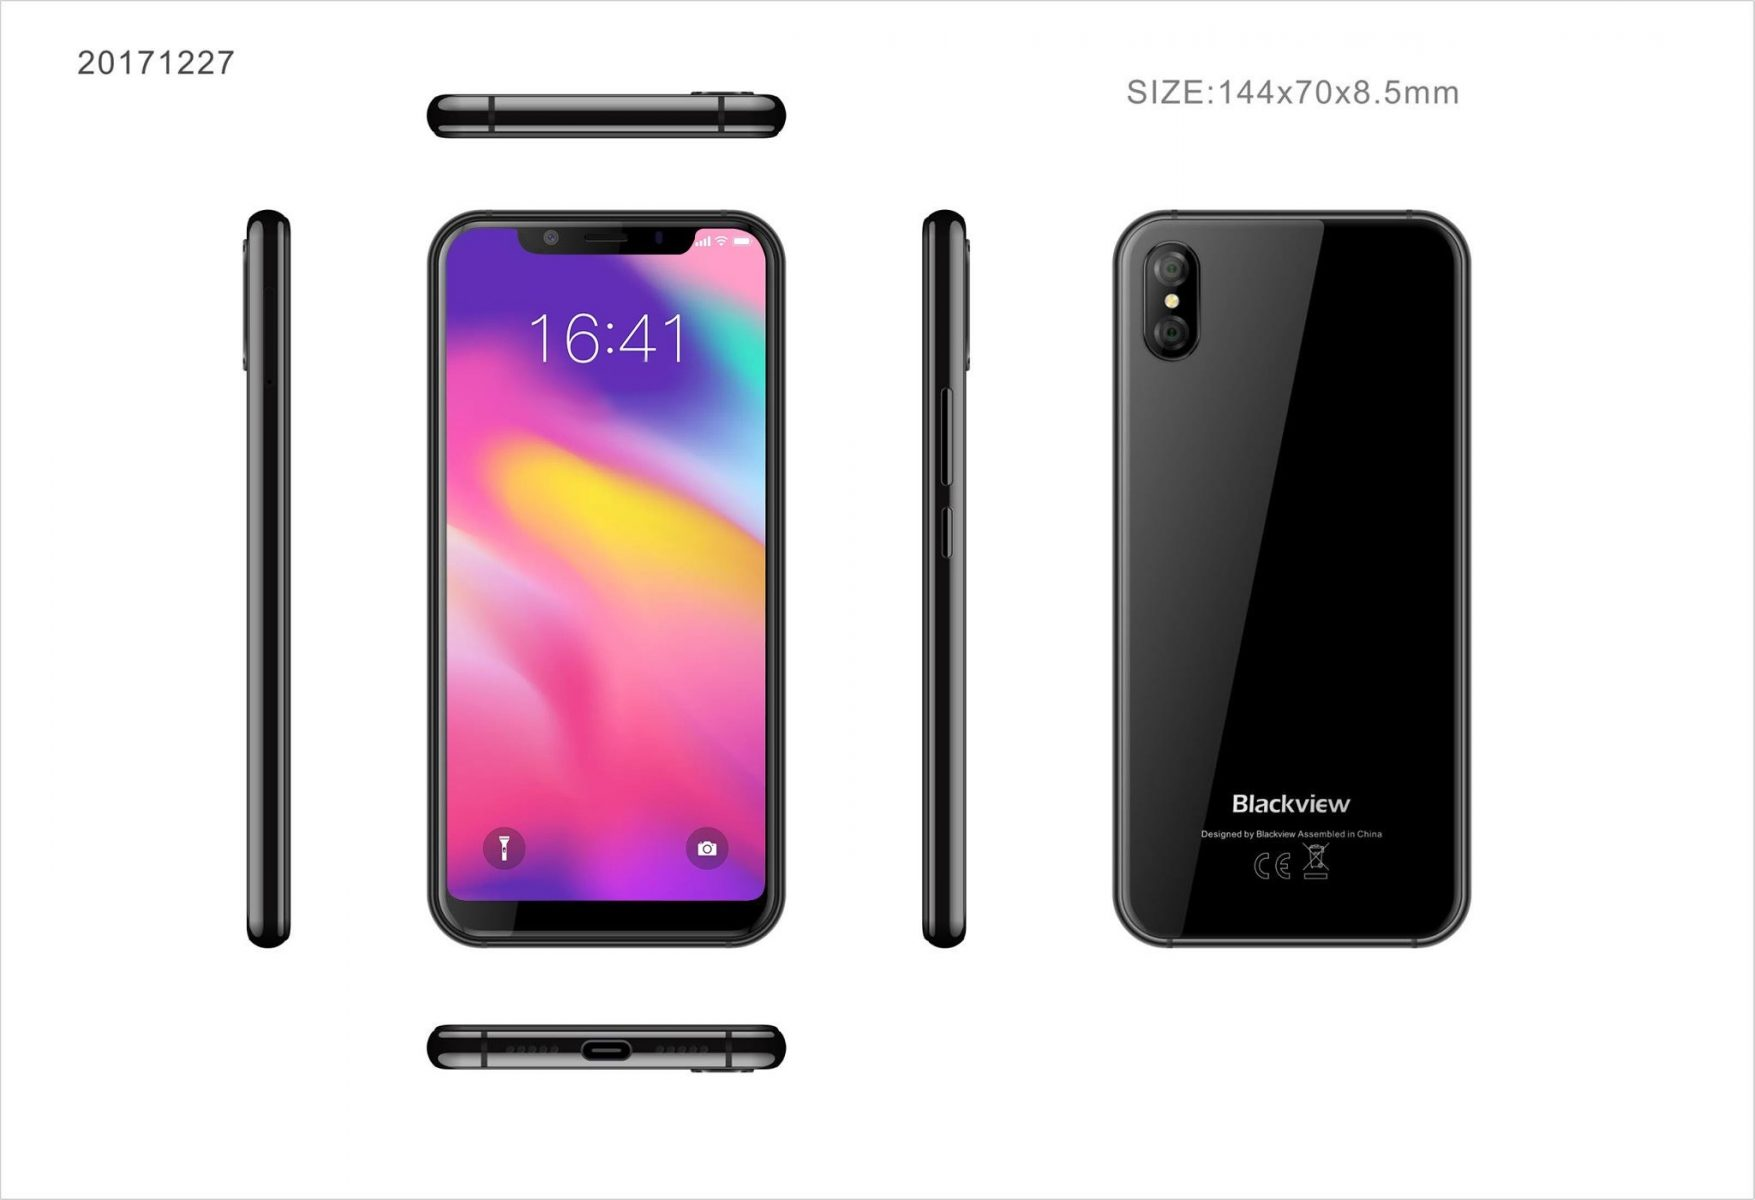 Blackview svela uno smartphone Android con l'aspetto di iPhone X